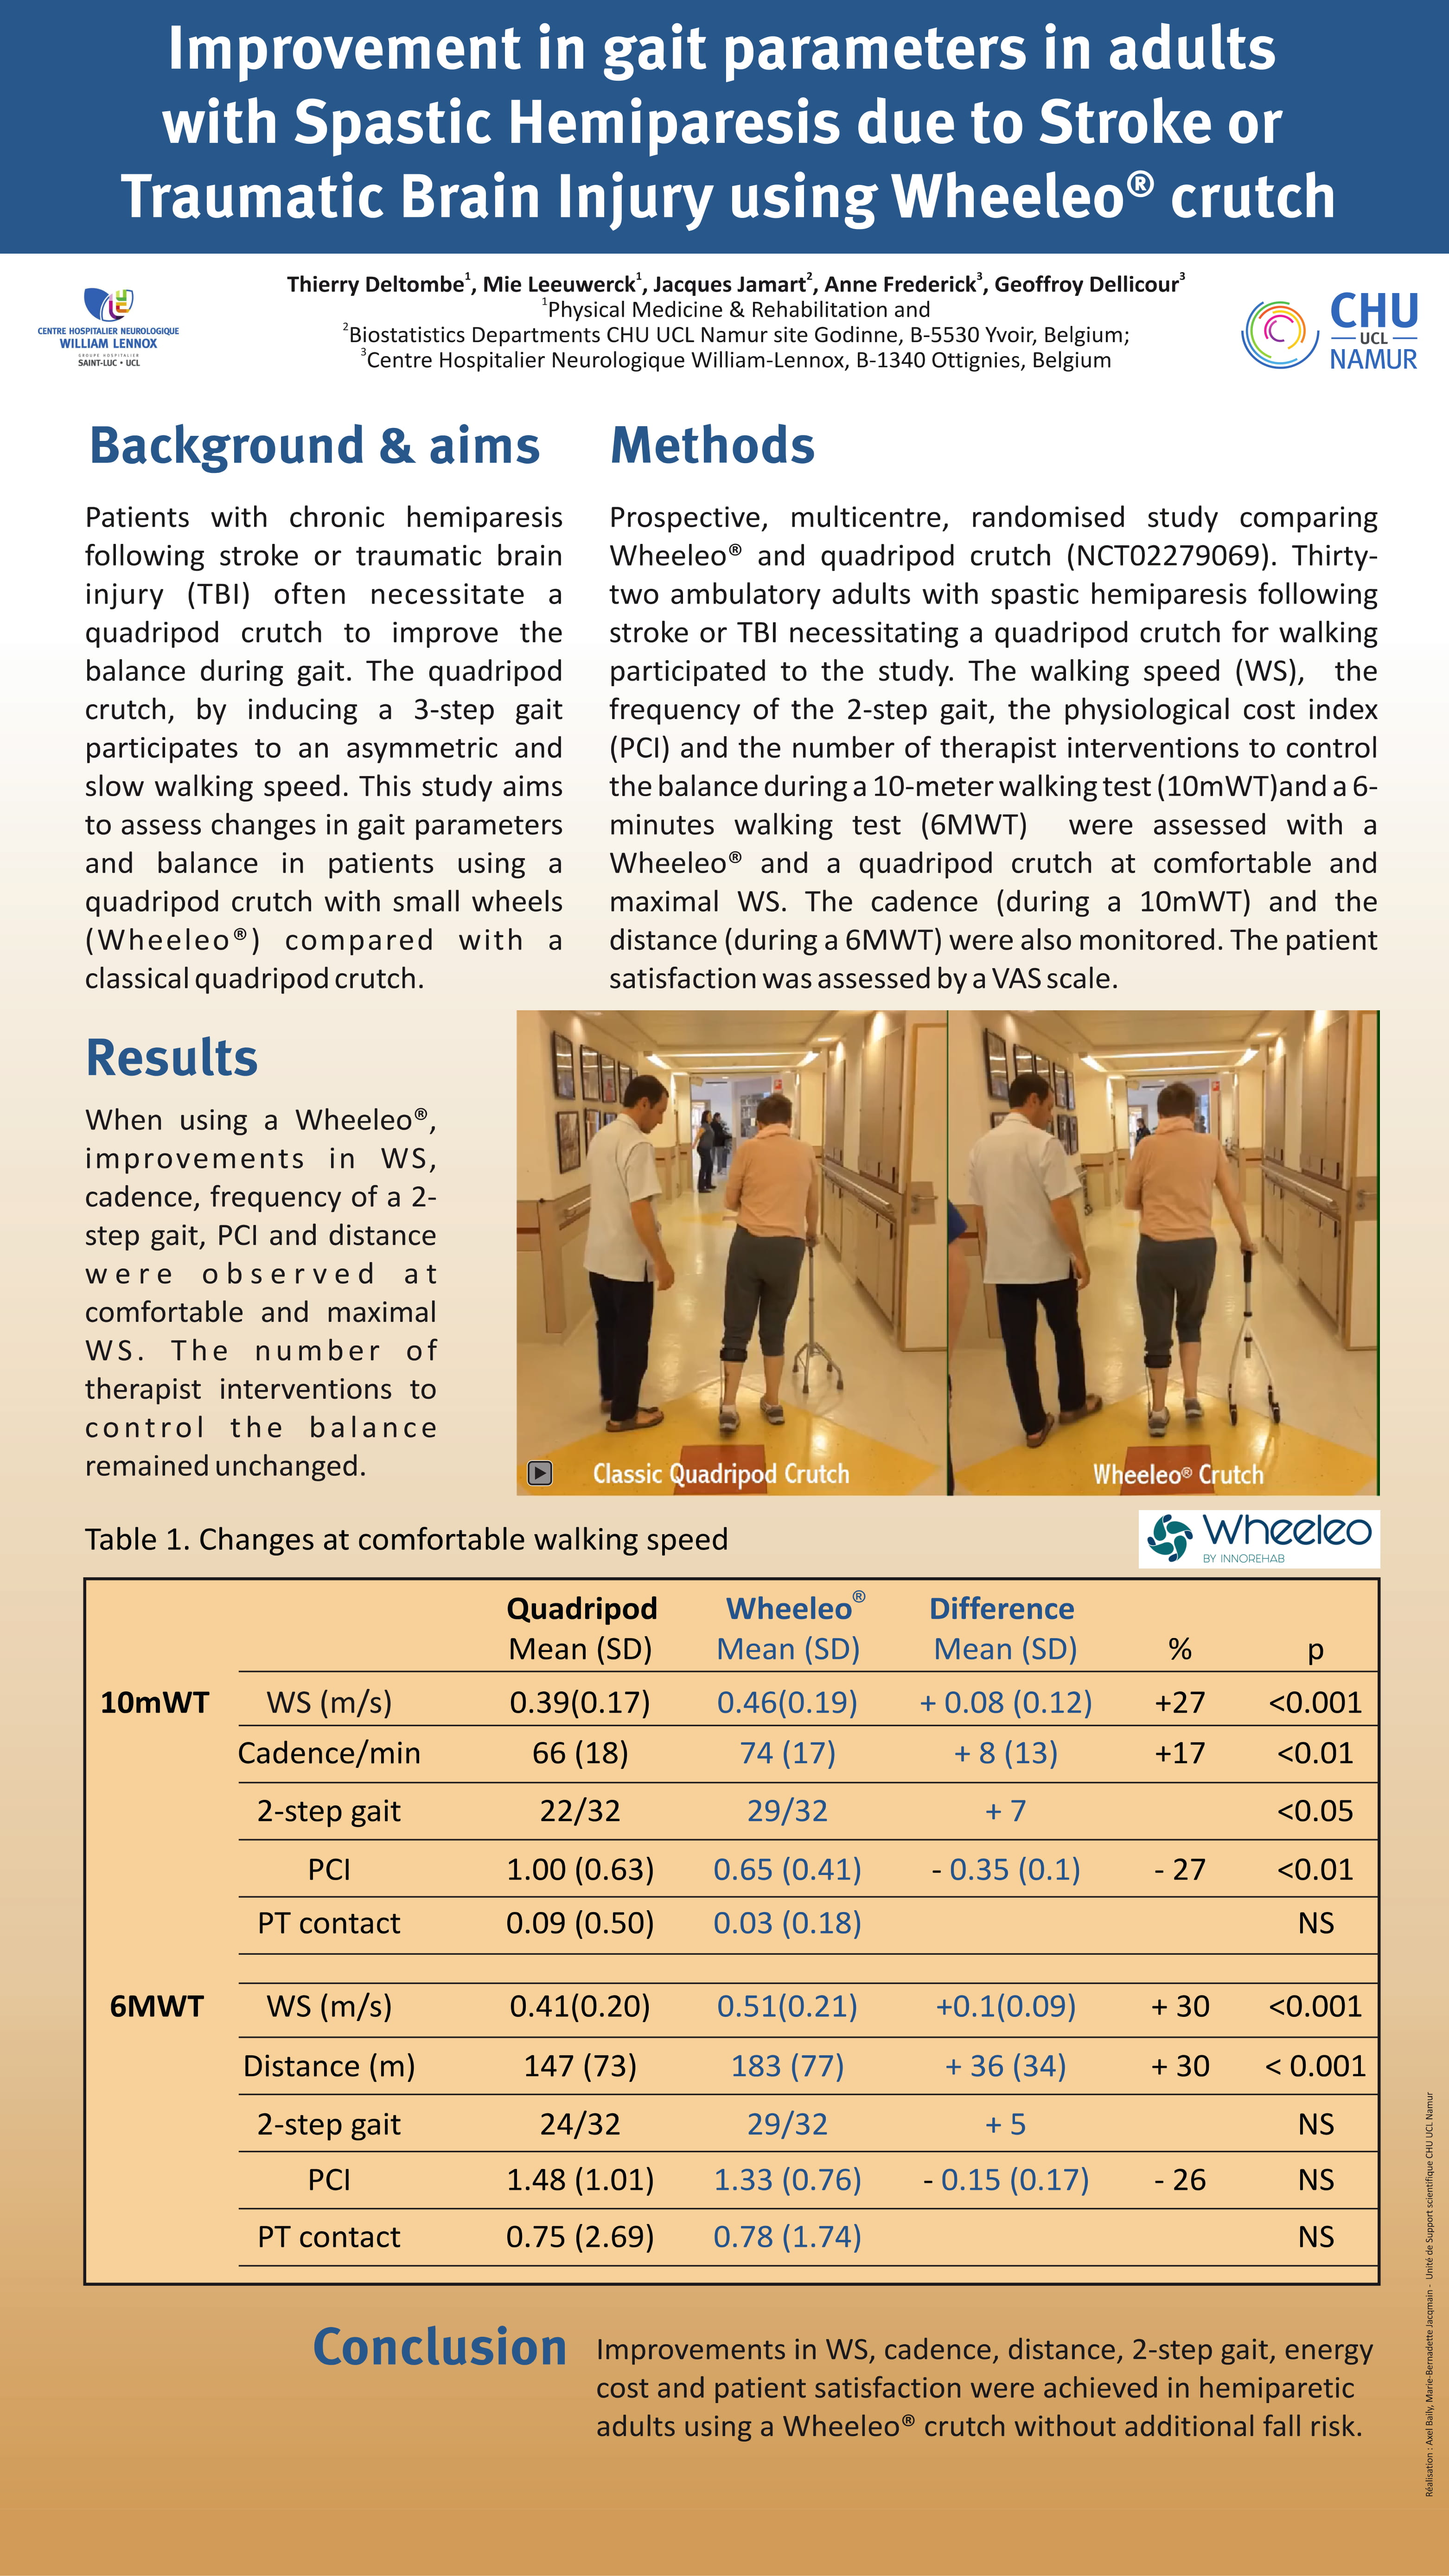 final C Improvement in gait parameters Wheeleo-1